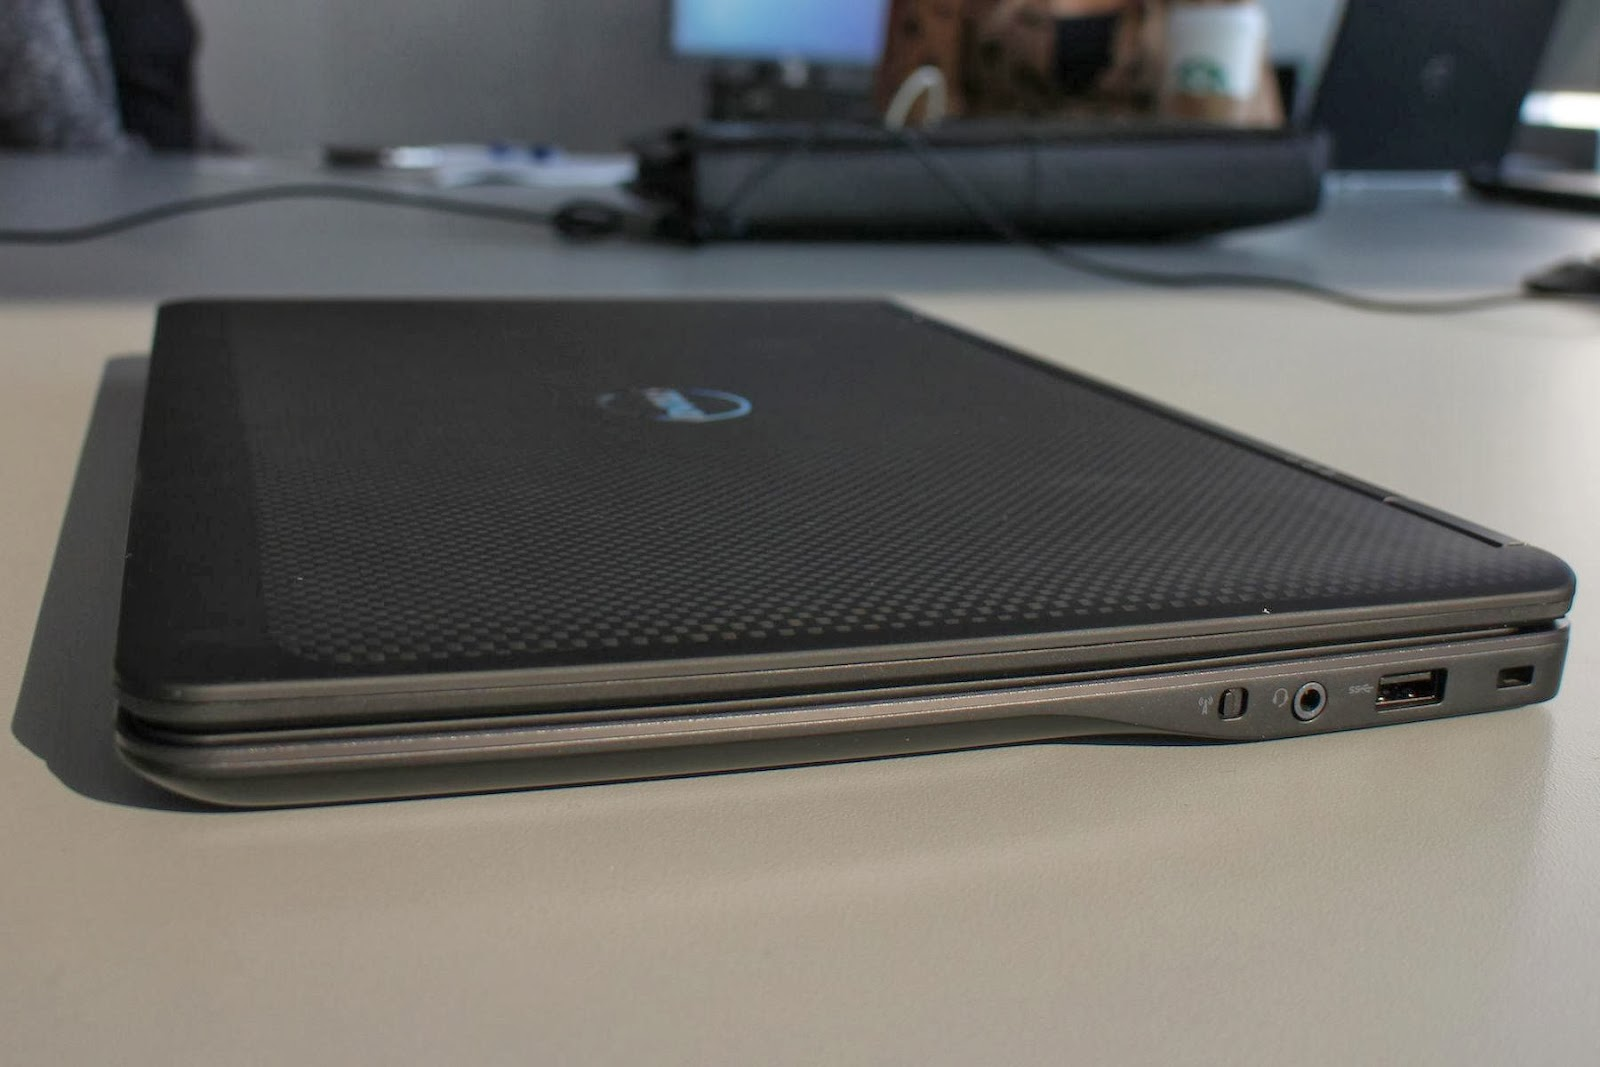 Dell Latitude E Right Ports in addition  further Msi Wind U together with P also Gelas Penyo. on samsung card reader